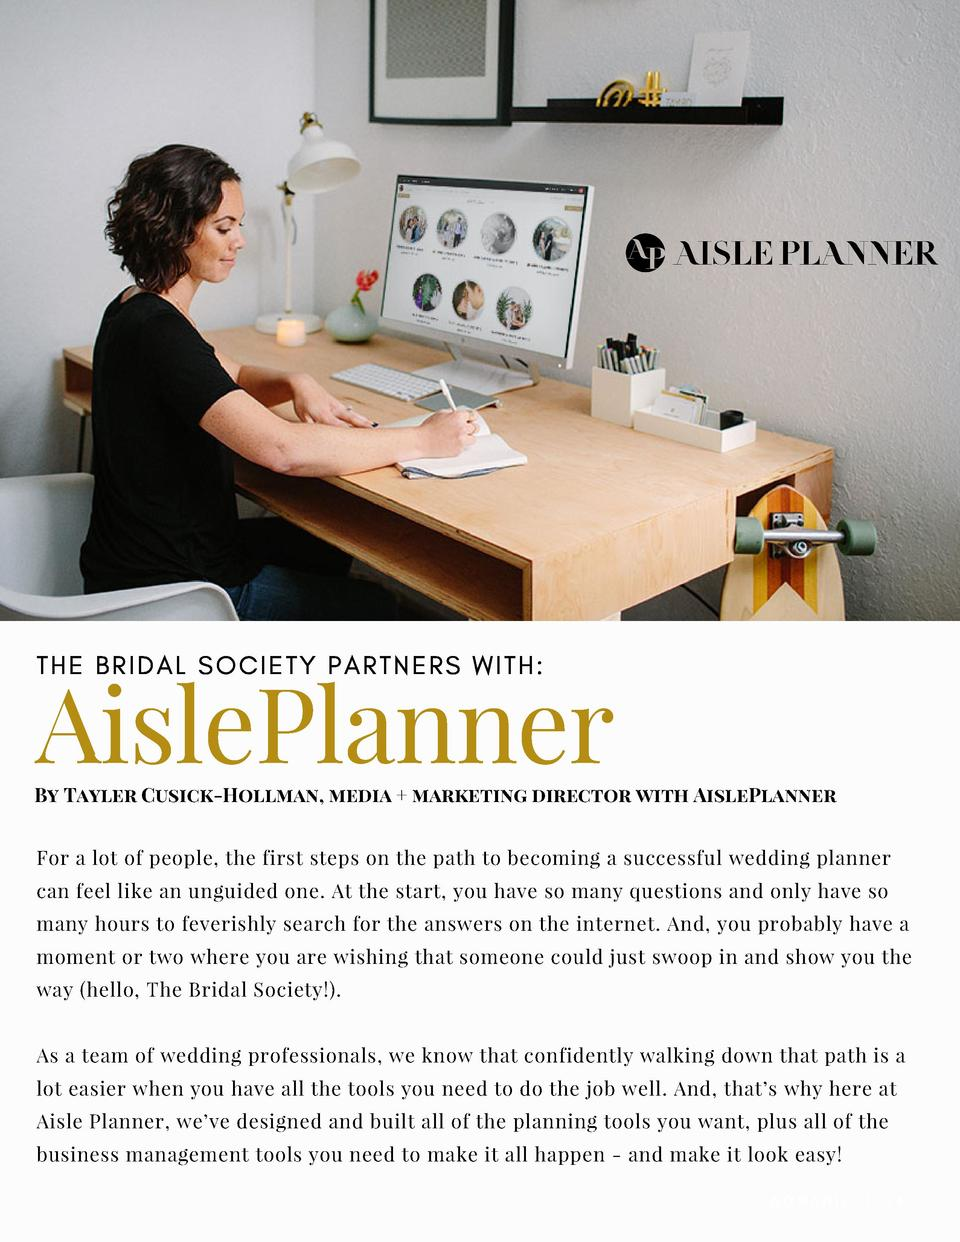 AislePlanner THE BRIDAL SOCIETY PARTNERS WITH   By Tayler Cusick-Hollman, media   marketing director with AislePlanner For...